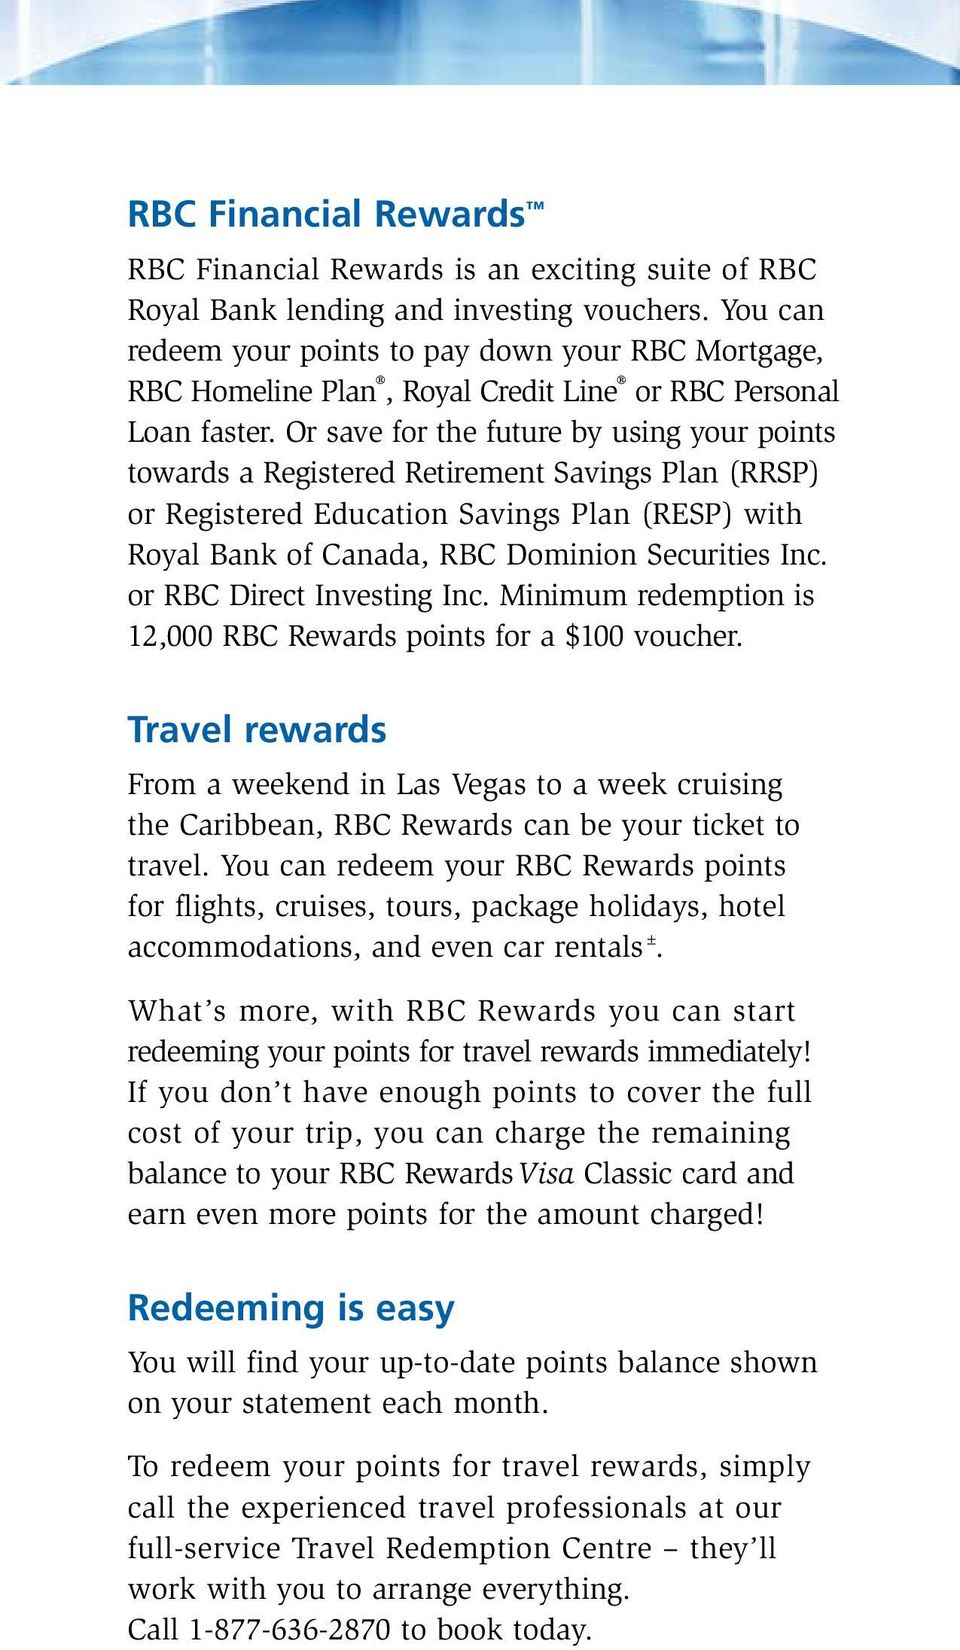 Discover the benefits of your new RBC Rewards Visa * Classic